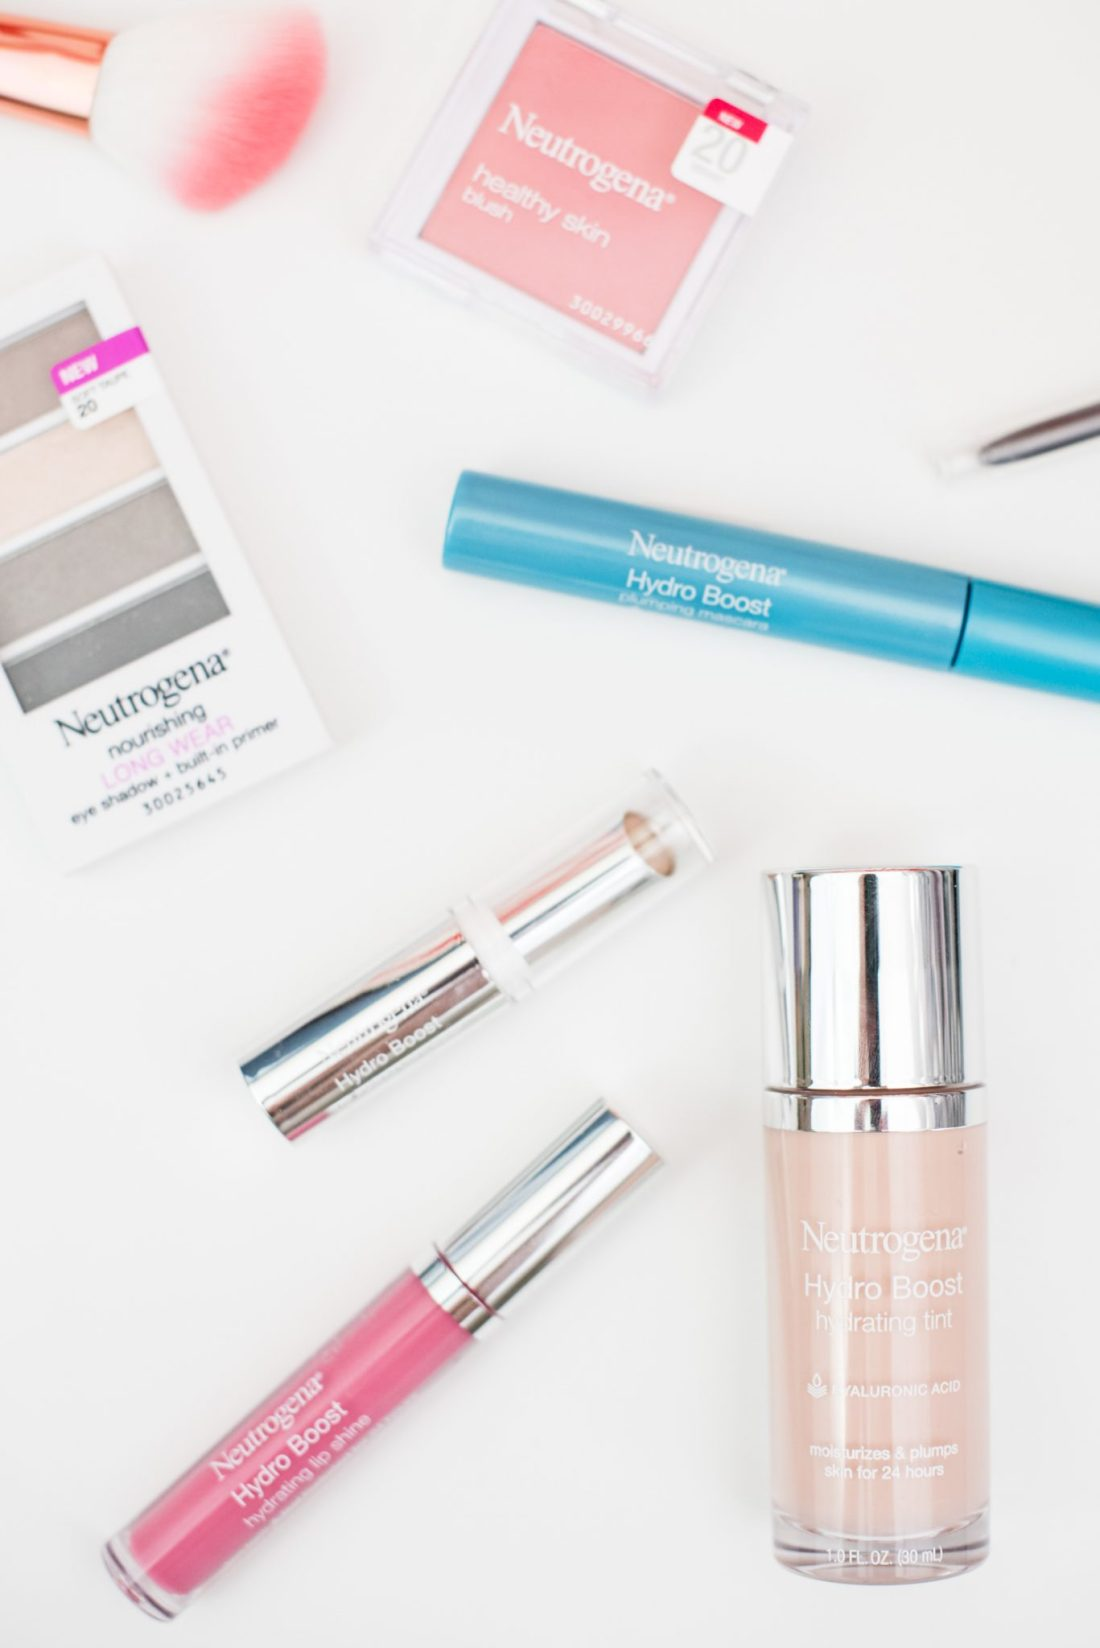 Combat Winter Dry Skin with Neutrogena HydroBoost Makeup #ad // Miss Molly Moon